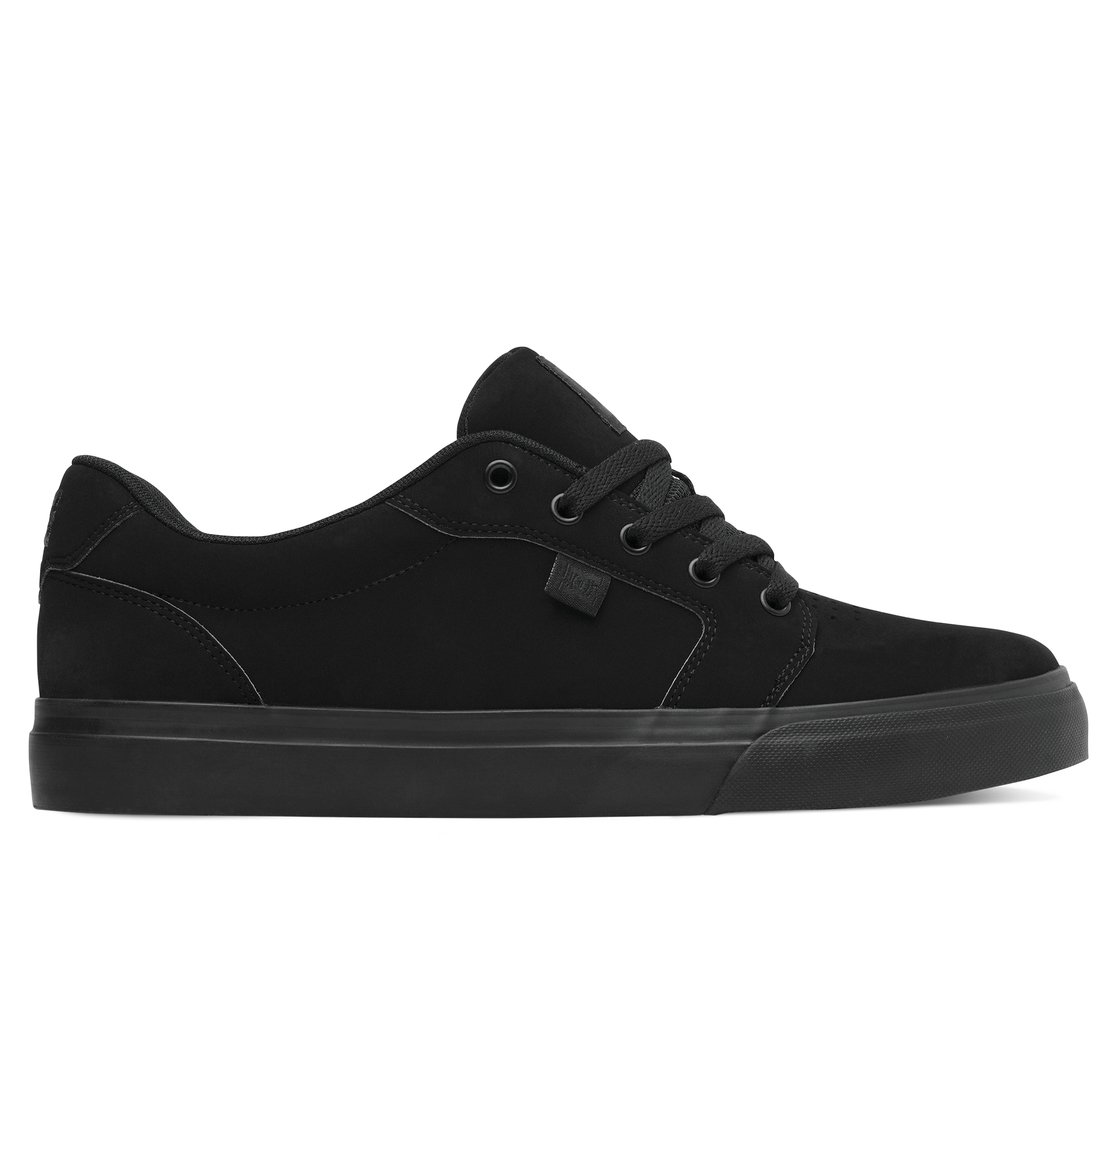 0 Anvil Shoes Black 303190 DC Shoes 082322c1d3b6e